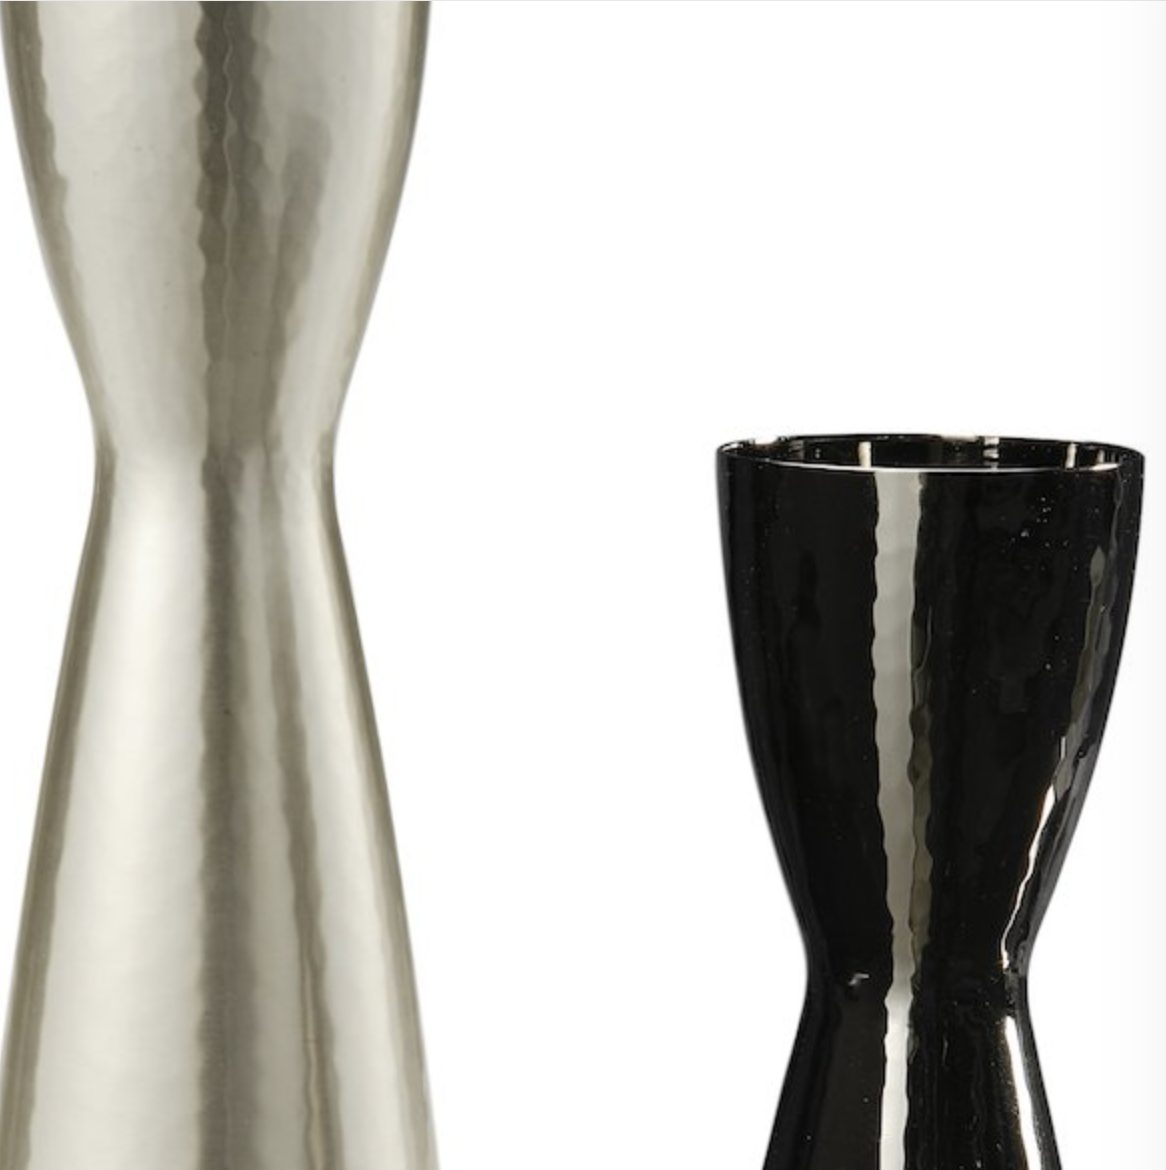 Omino Couple Vase - This couple of vases is a special edition in 50 numbered pairs to celebrate the 50th anniversary of Zanetto.  The satin silver finish and the titanium make this re-edition contemporary and elegant, demonstrating the innovative spirit of Zanetto workshop. | Matter of Stuff